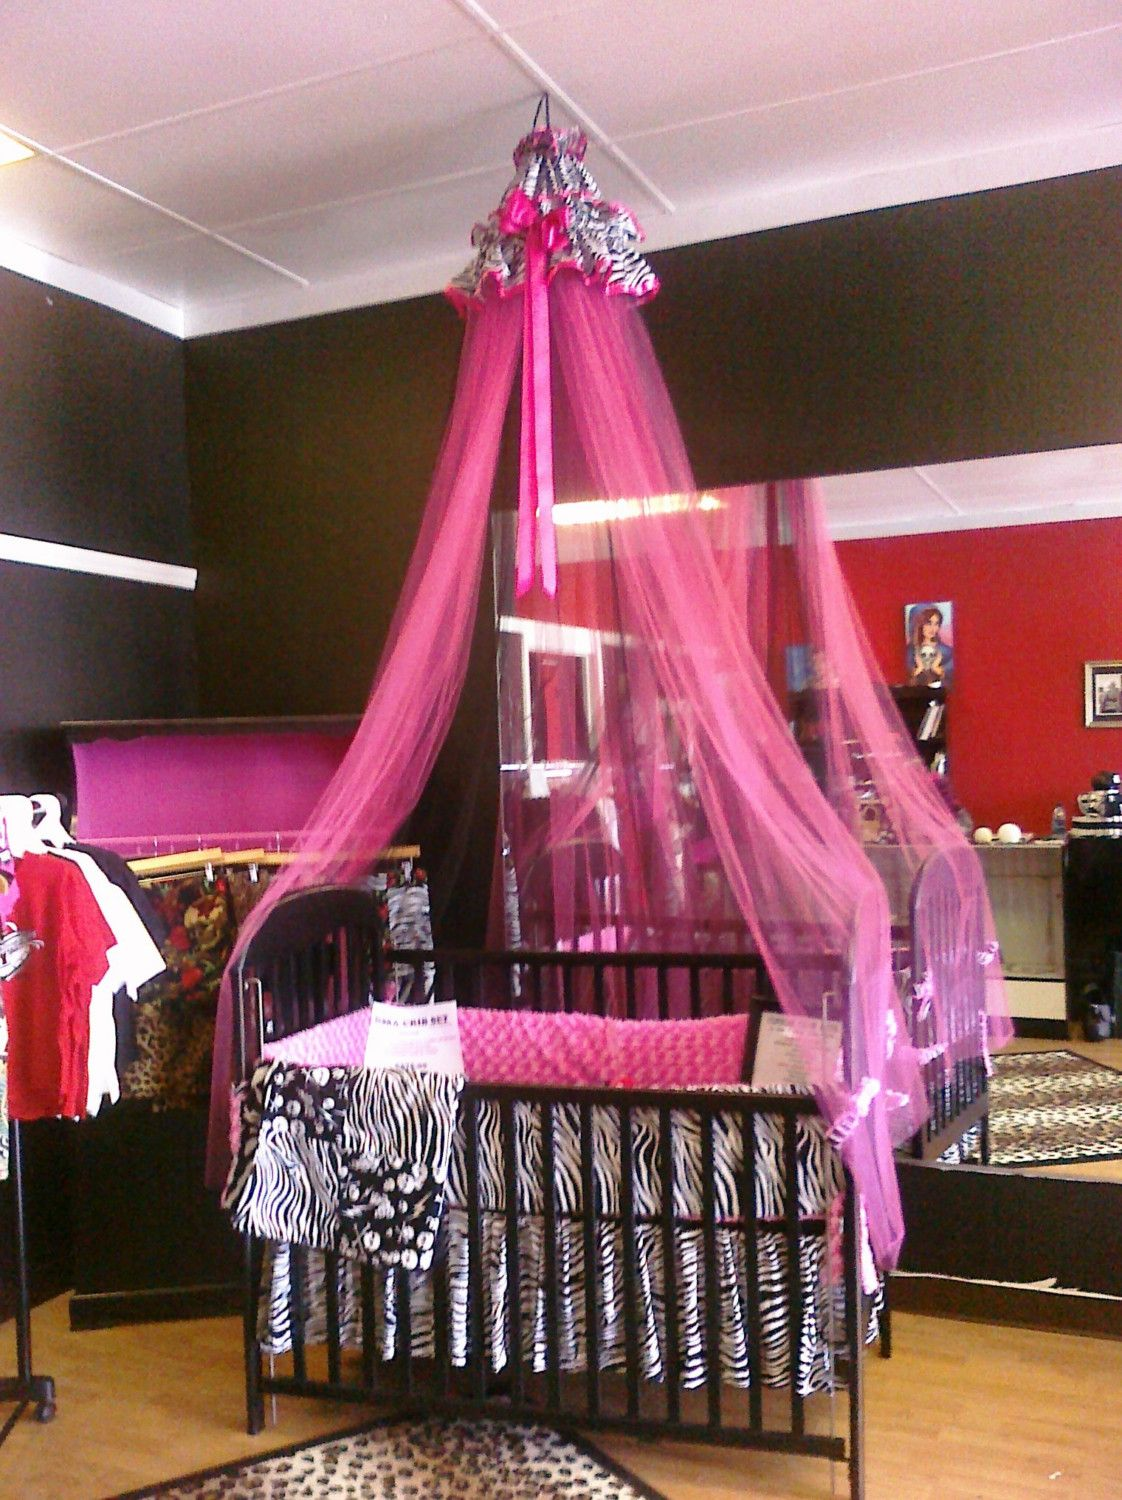 Punk Rock Zebra Canopy - Hot Pink and Black Glimmer Tulle - FREE SHIPPING. $119.95 : hot pink canopy - memphite.com